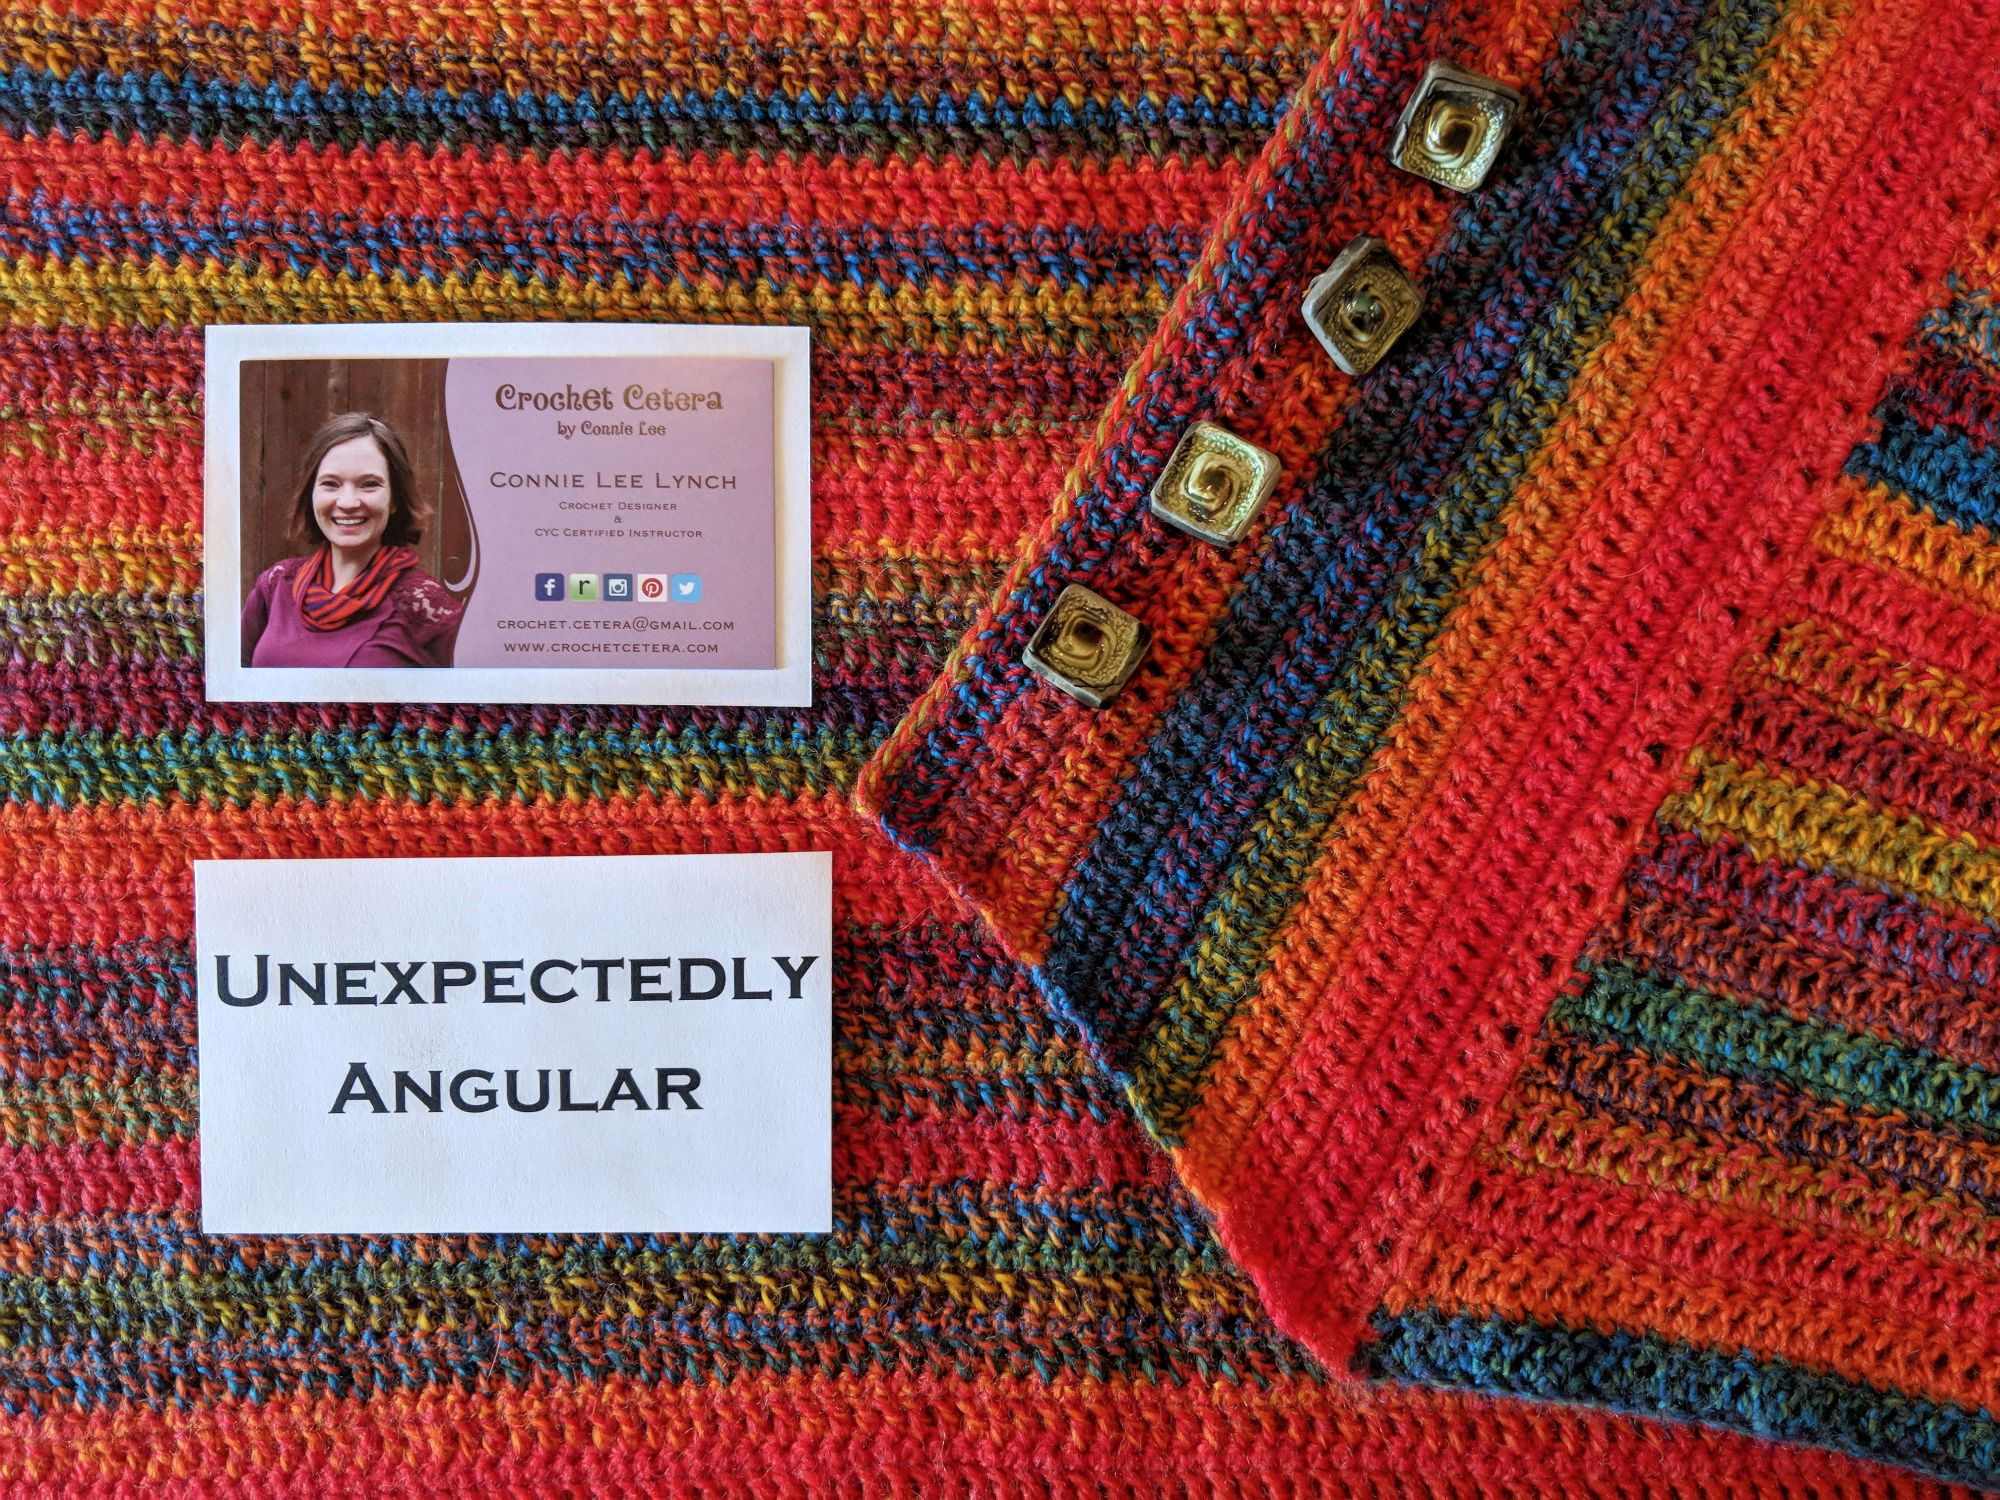 Unexpectedly Angular with  Connie Lee Lynch